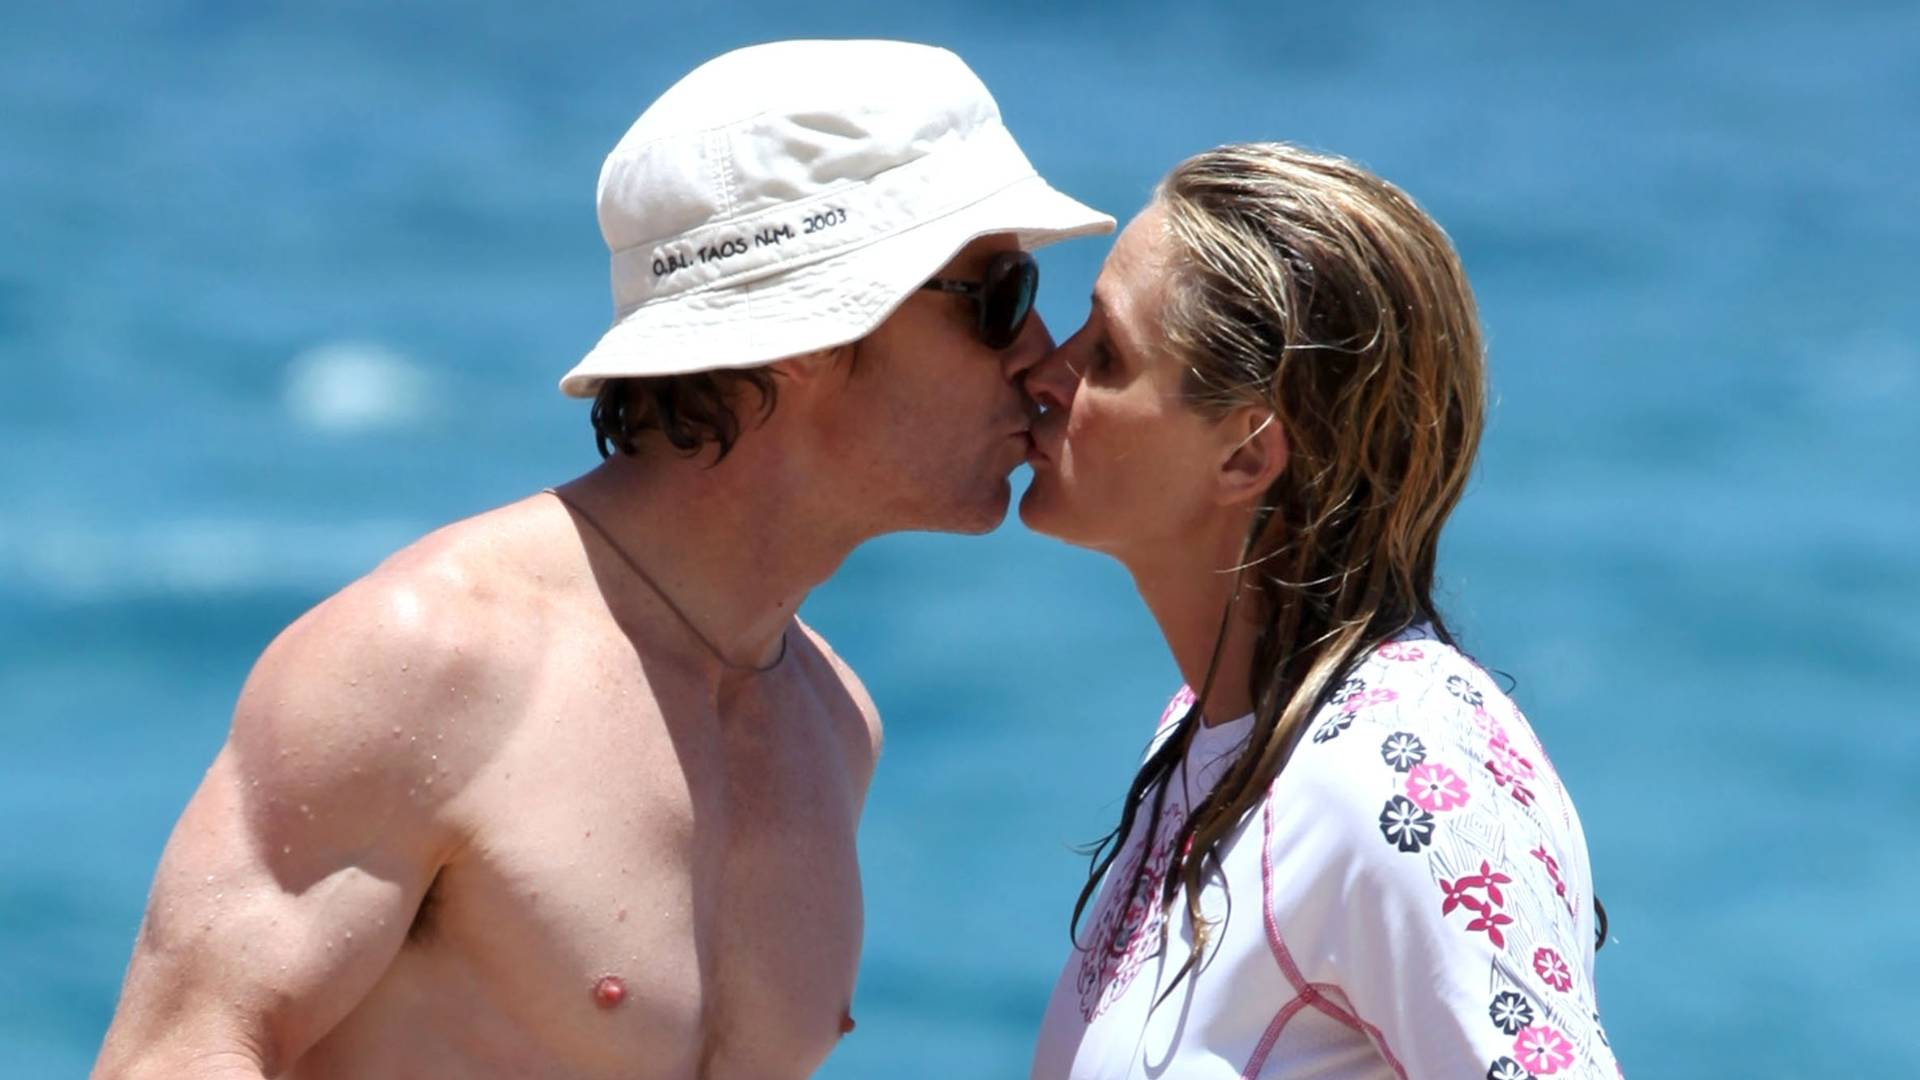 Em clima de romance, Julia Roberts e o marido Danny Moder curtem frias no Hava (16/8/11)